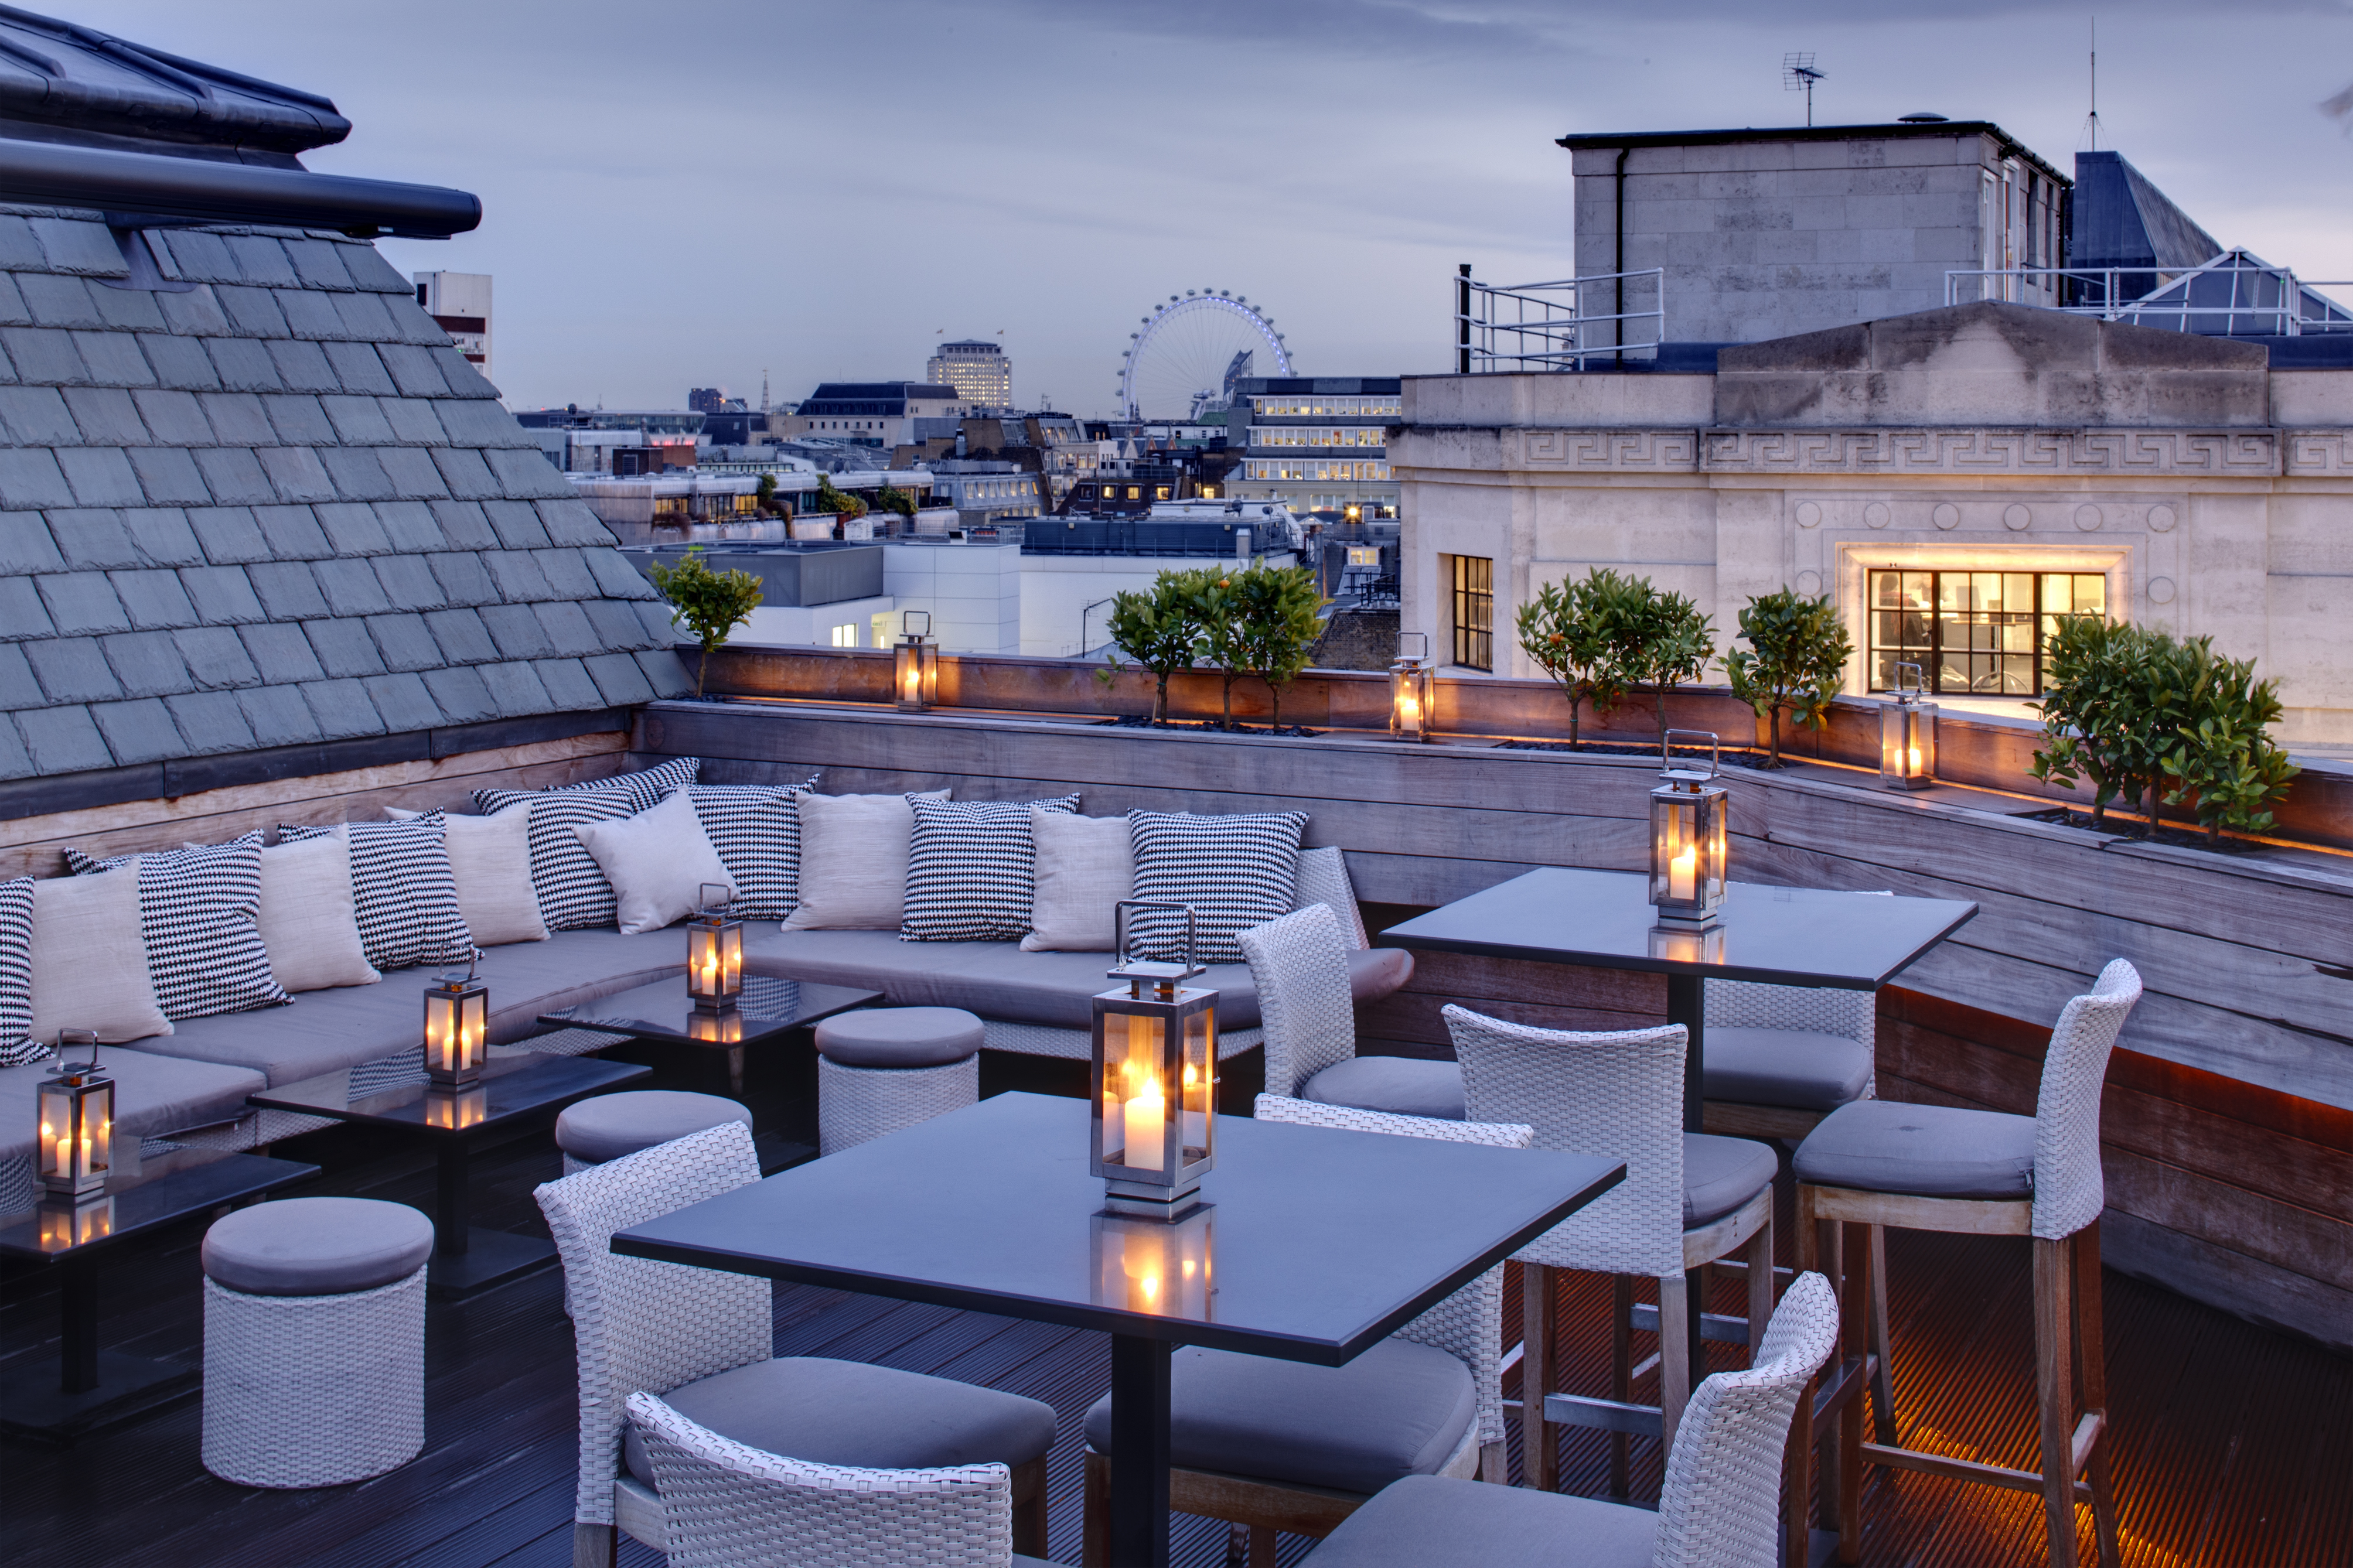 Terraces faq the down low on the high up aqua london for Terraces opening times